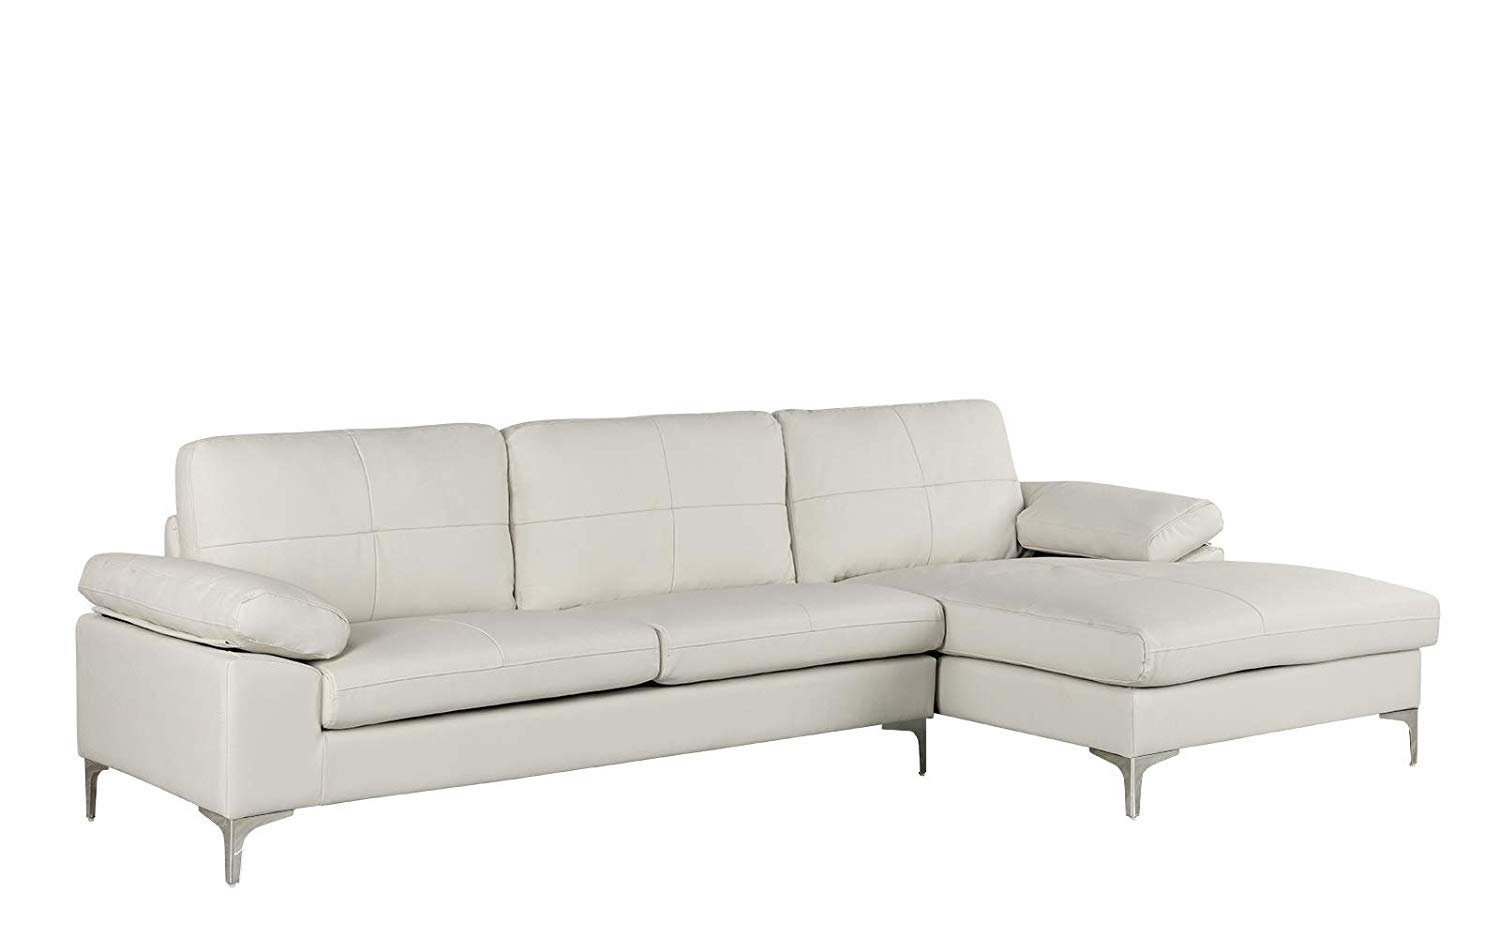 Sofa L Images Details About Large Leather Sectional Sofa L Shape Couch With Chaise 108 7